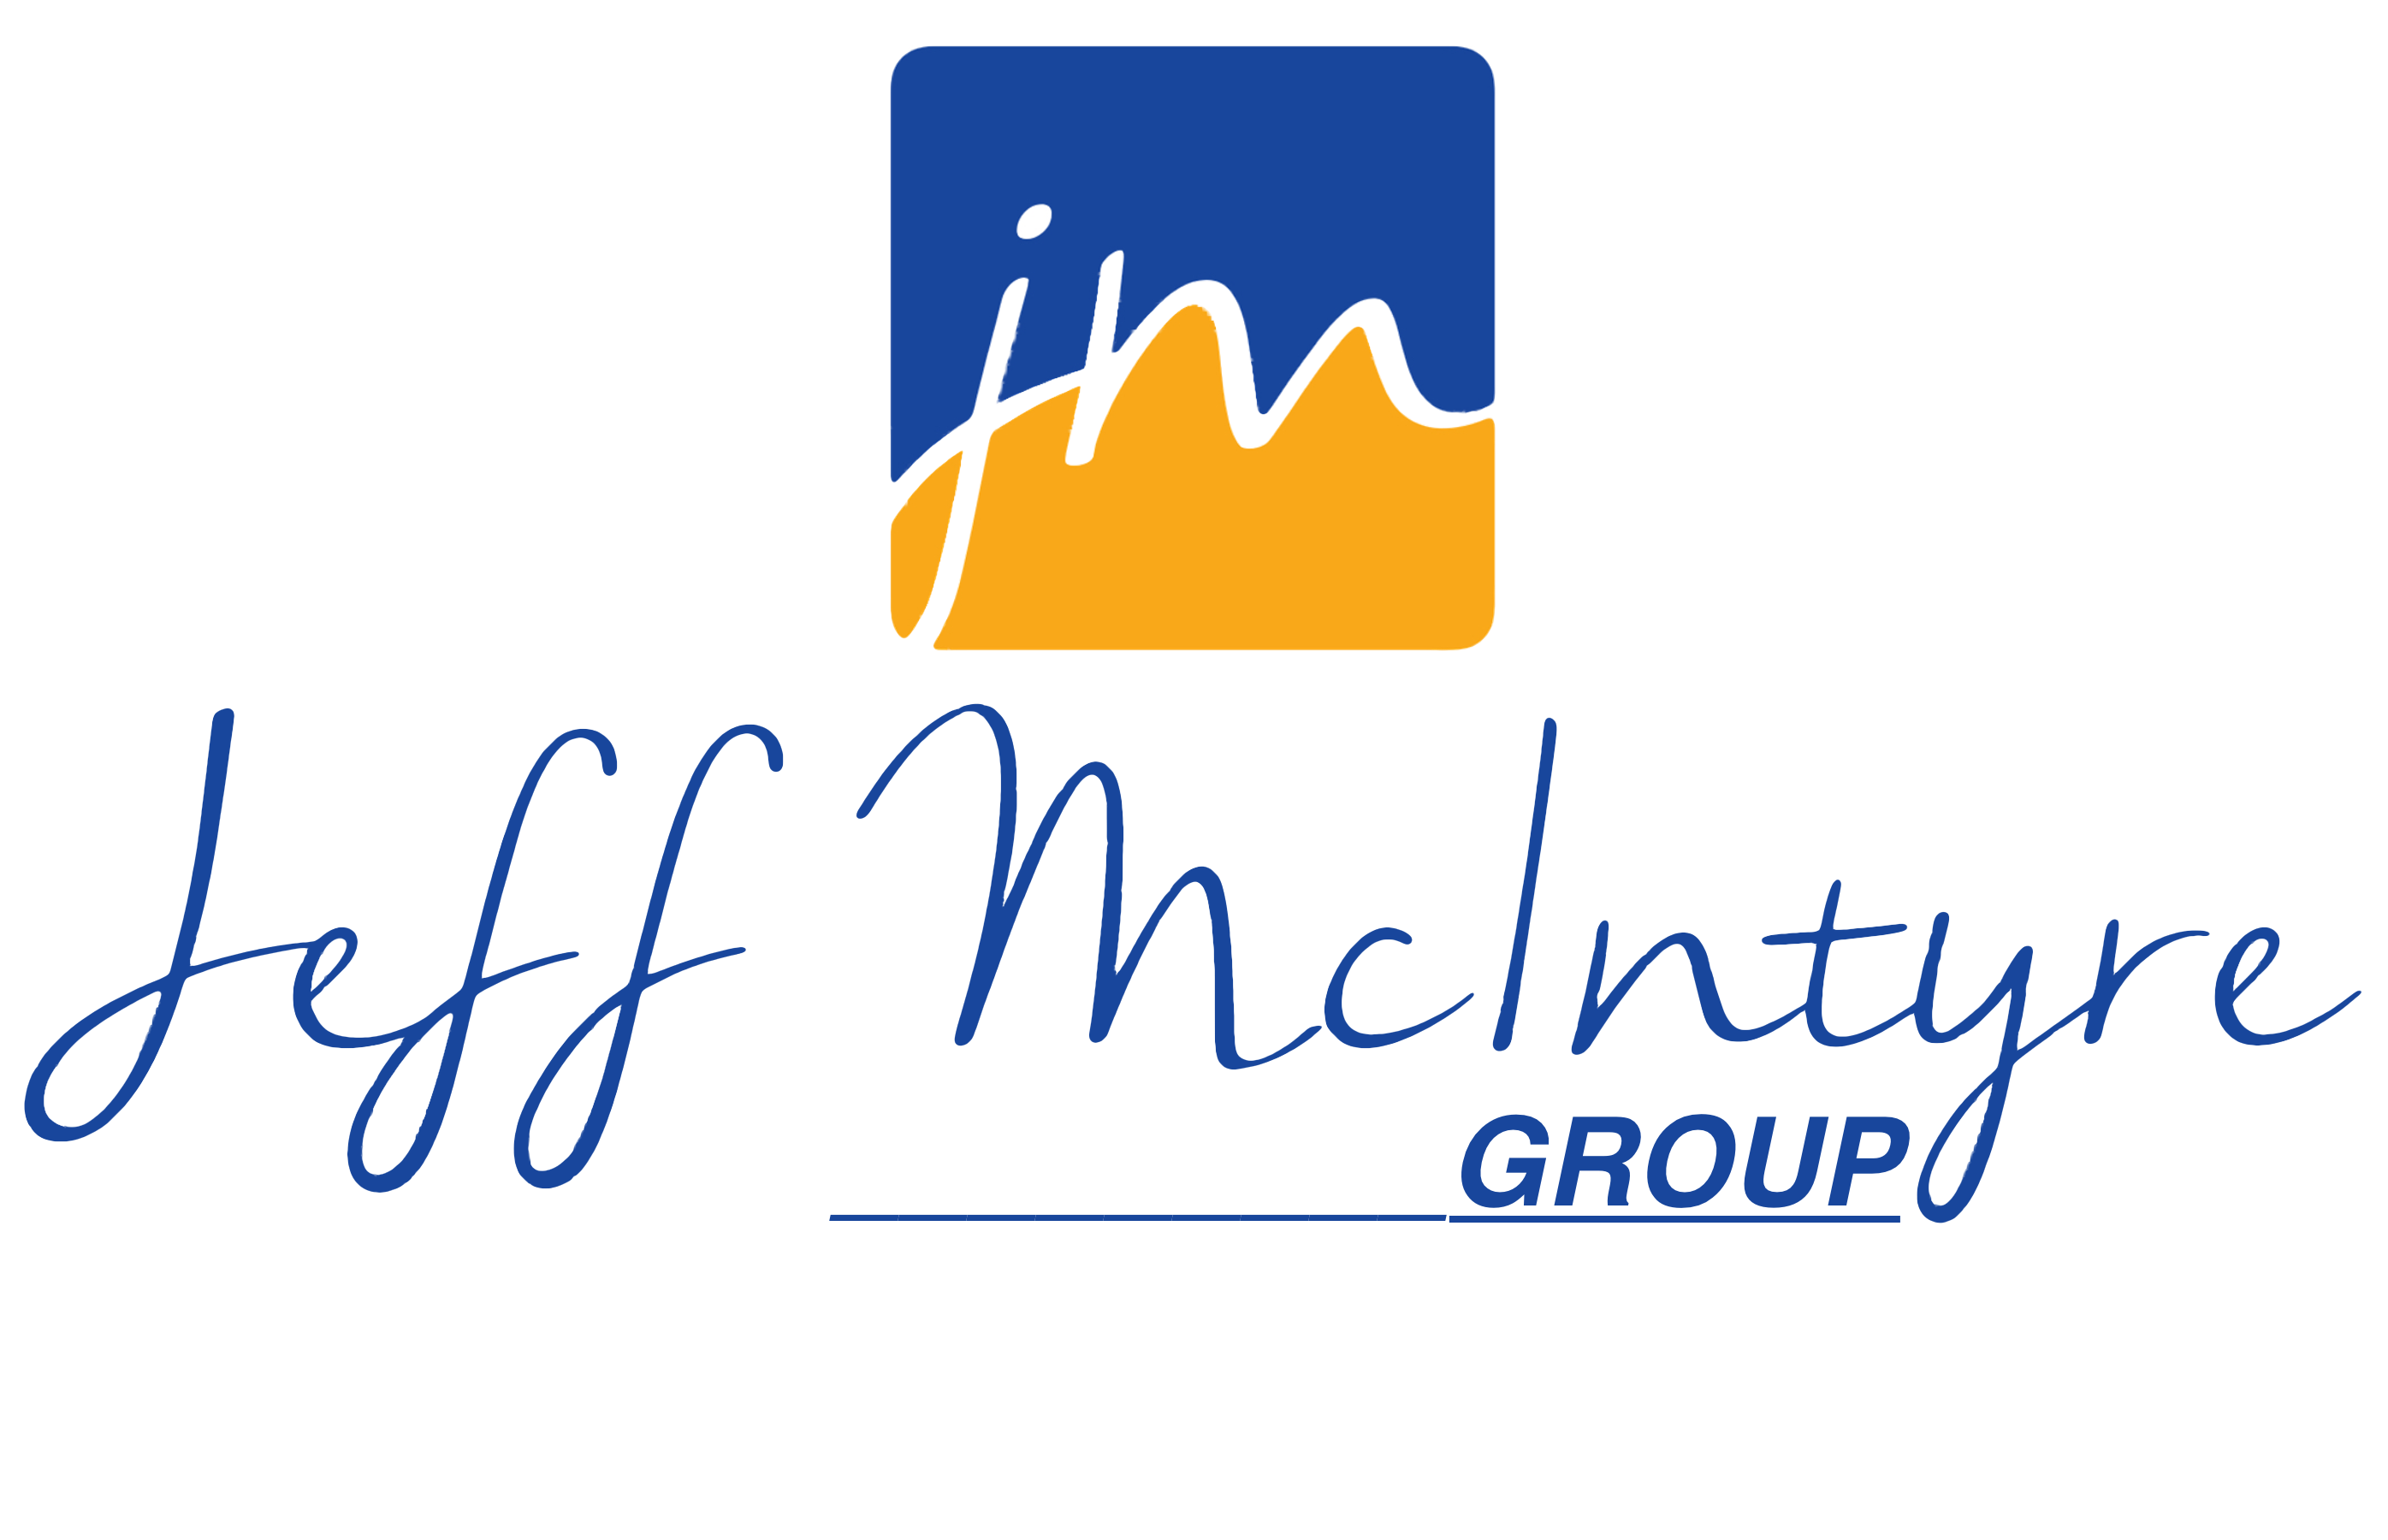 Jeff McIntyre Group logo